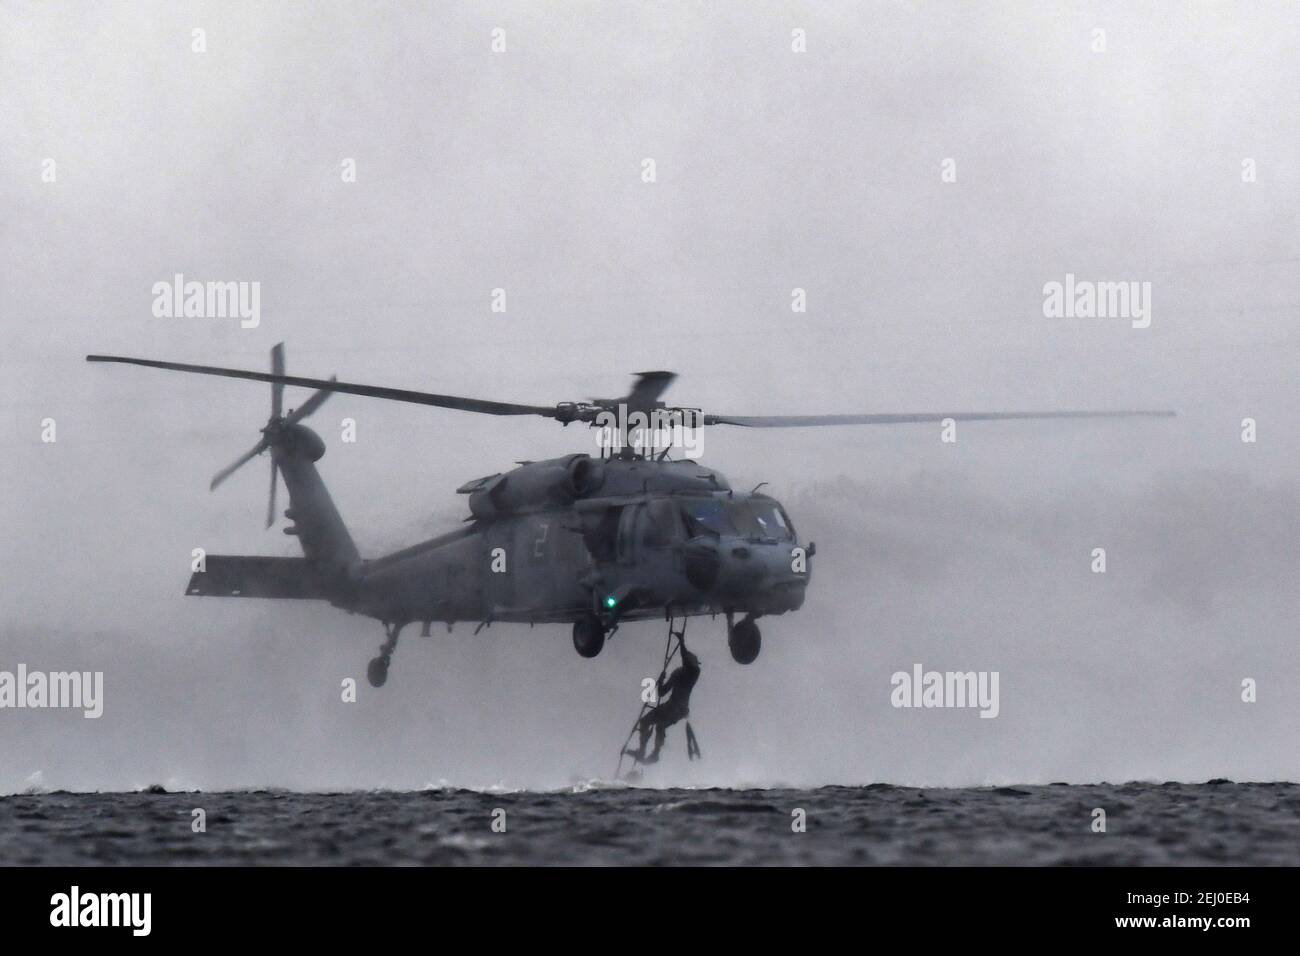 U.S. Air Force Special Tactics teams assigned to the 24th Special Operations Wing, conduct hoist operations with a Navy MH-60 Seahawk helicopter during Emerald Warrior at Hurlburt Field February 18, 2021 in Mary Esther, Florida. Stock Photo